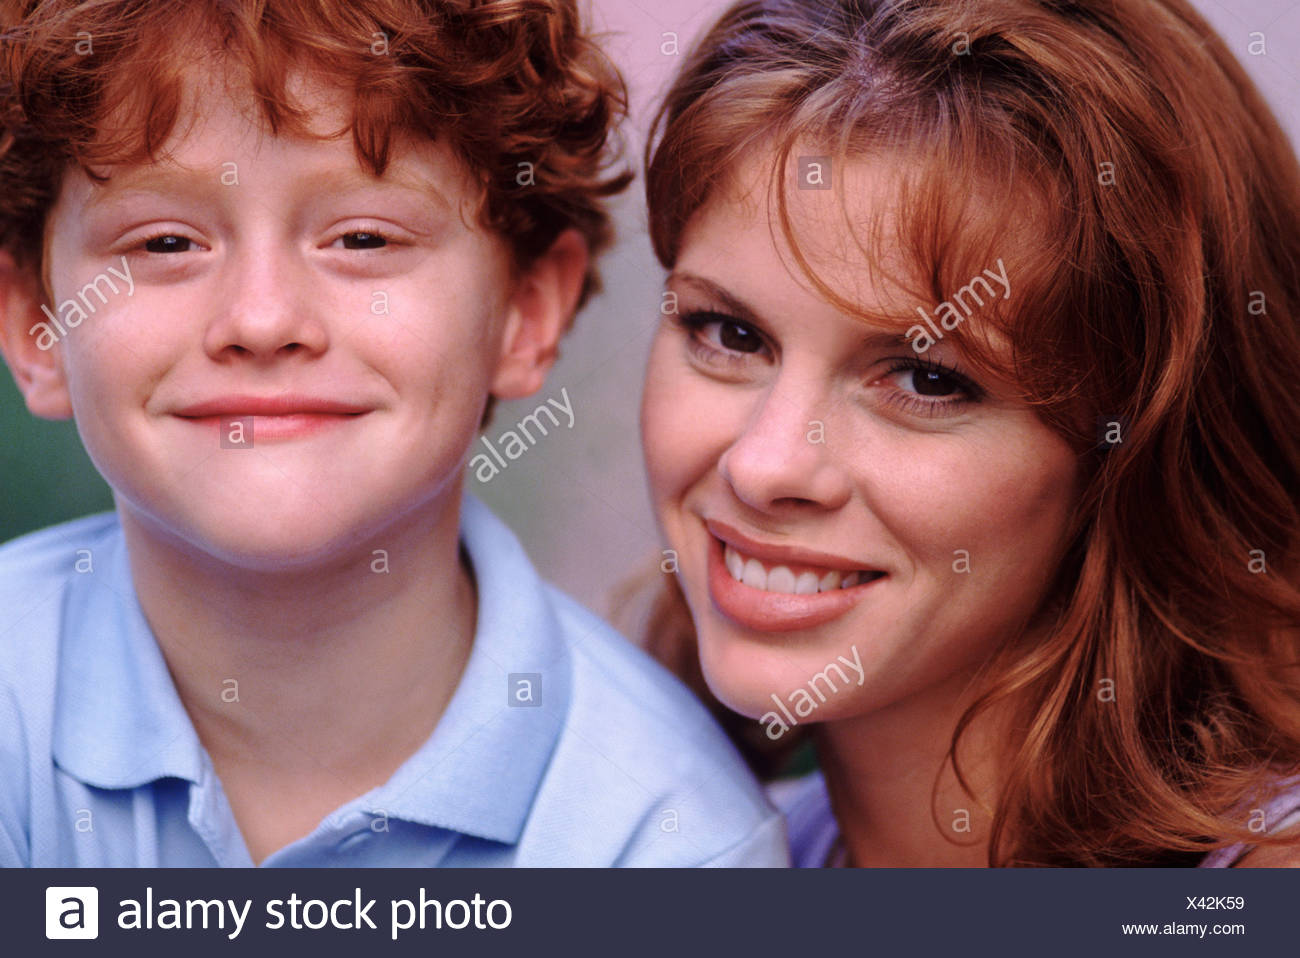 Portrait of a mother an her cute red headed son - Stock Image